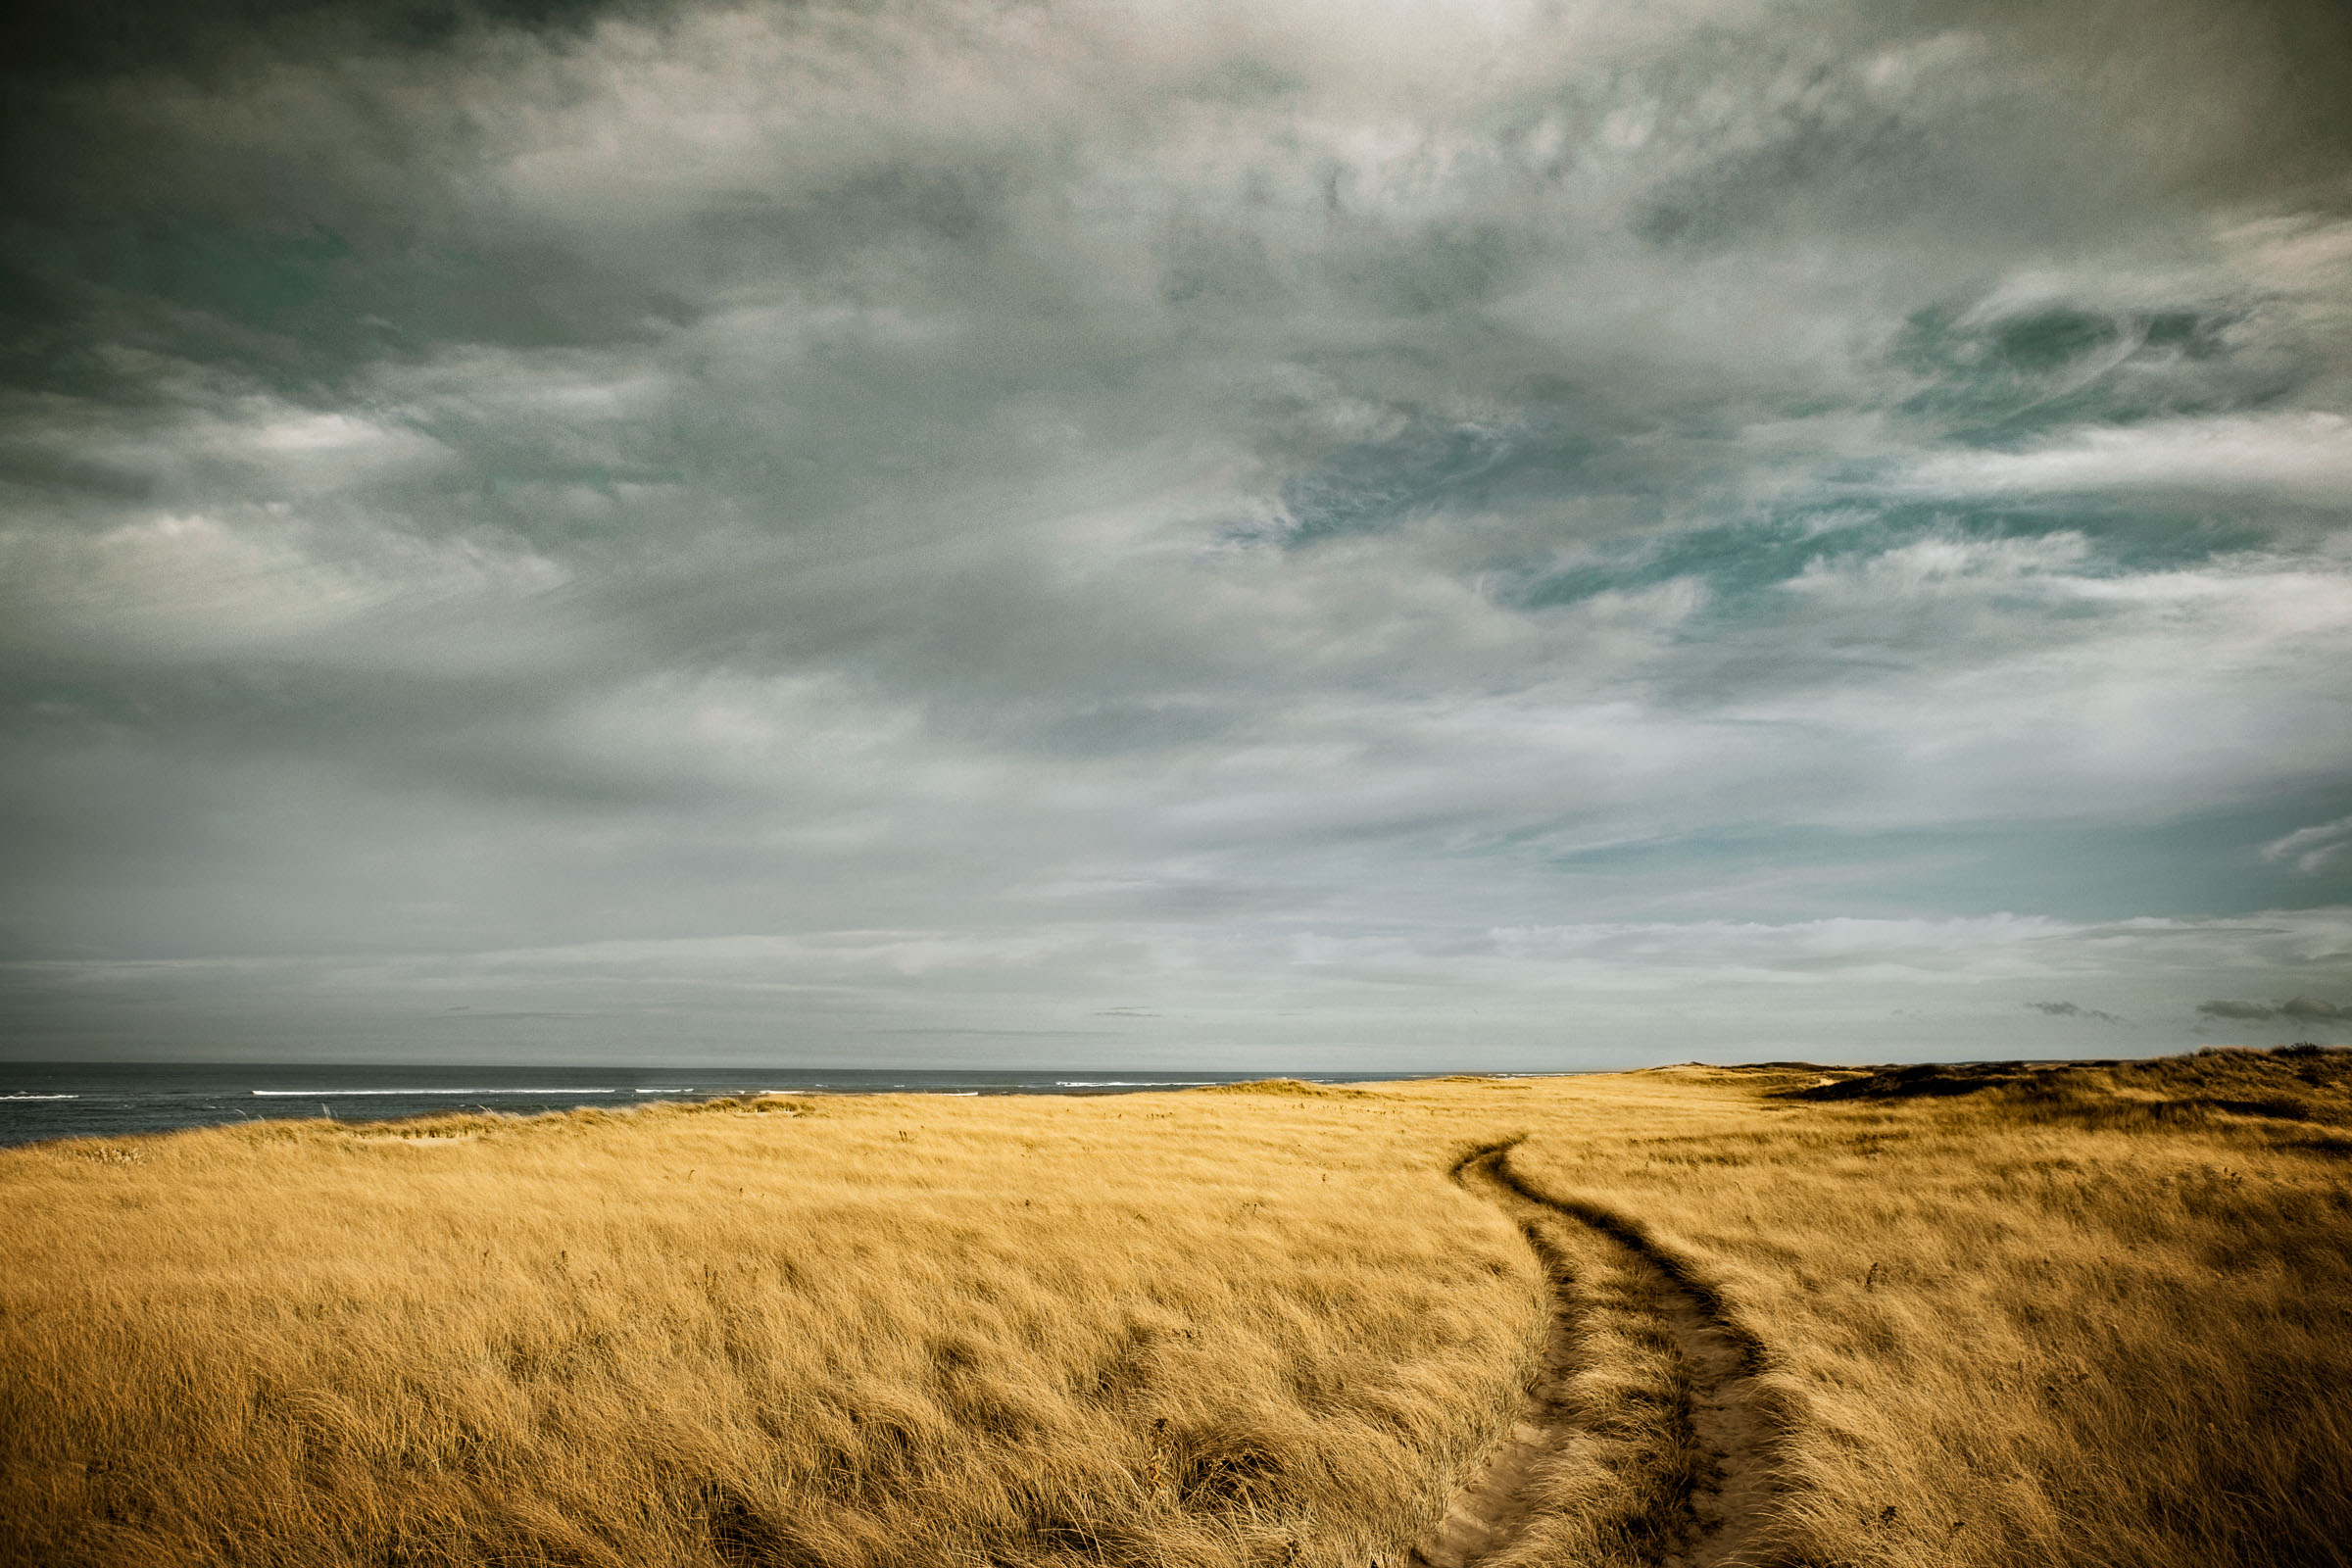 Path through high grass on a stormy beach.